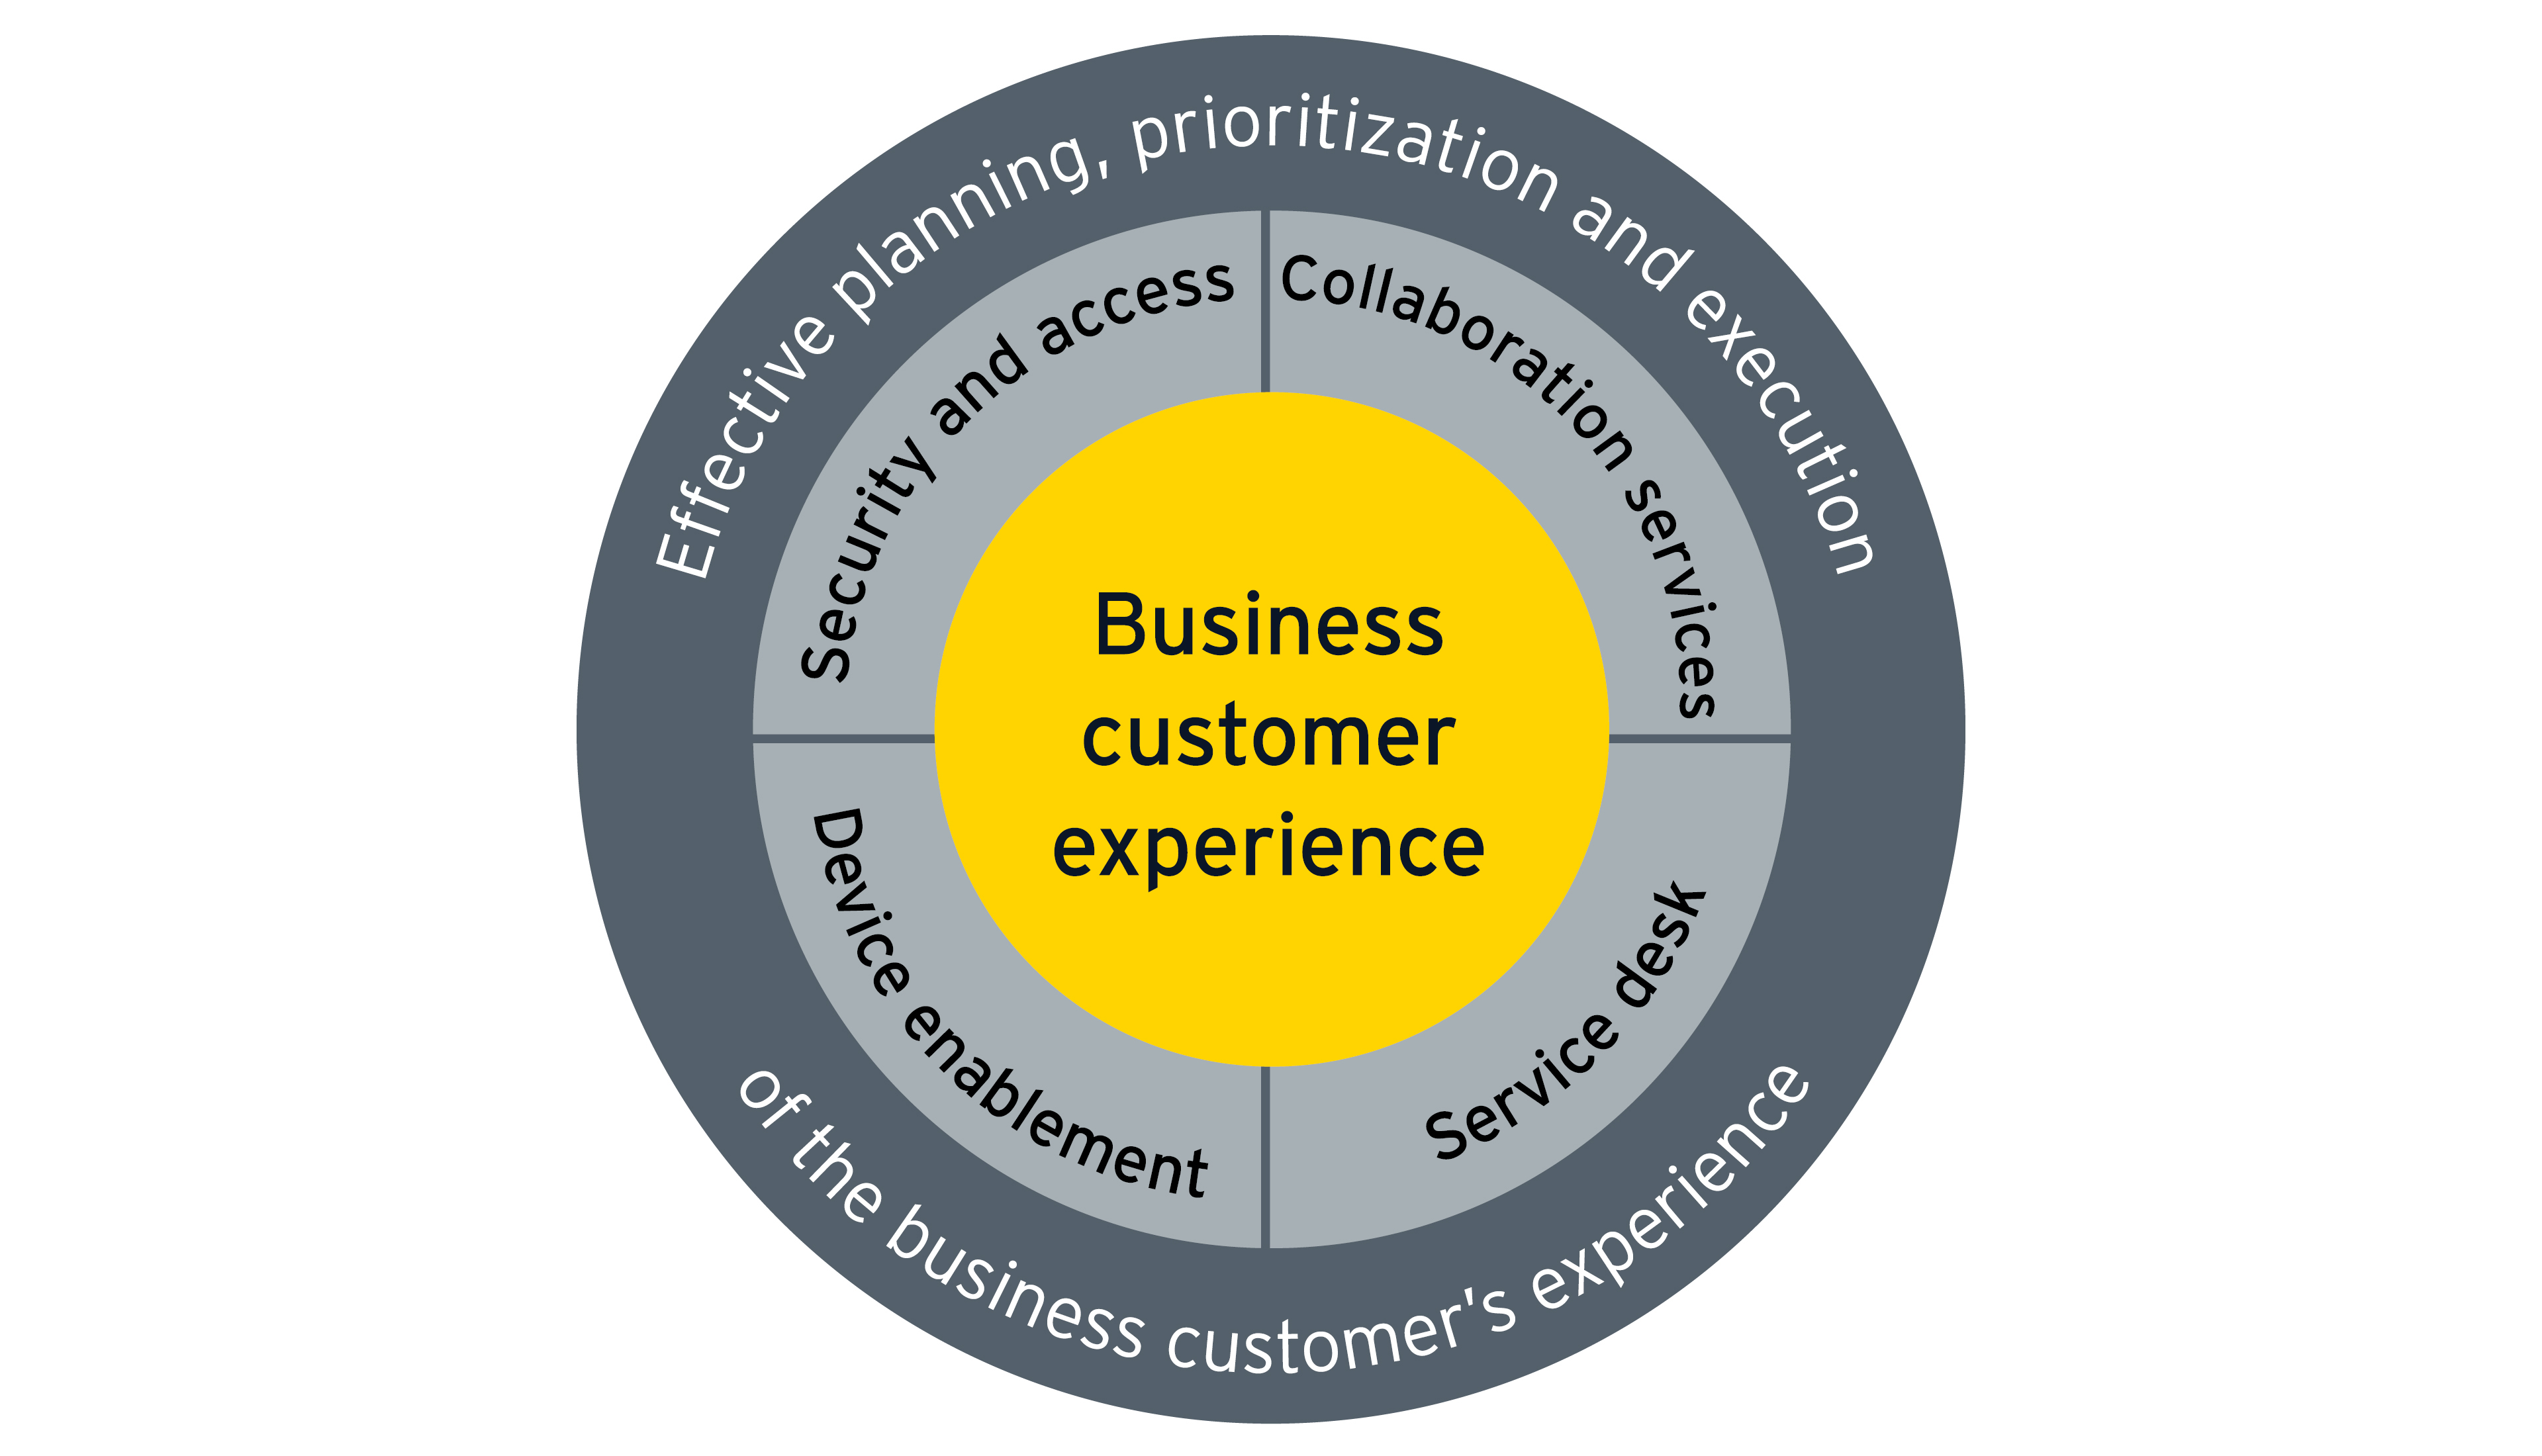 EY - Business customer experience